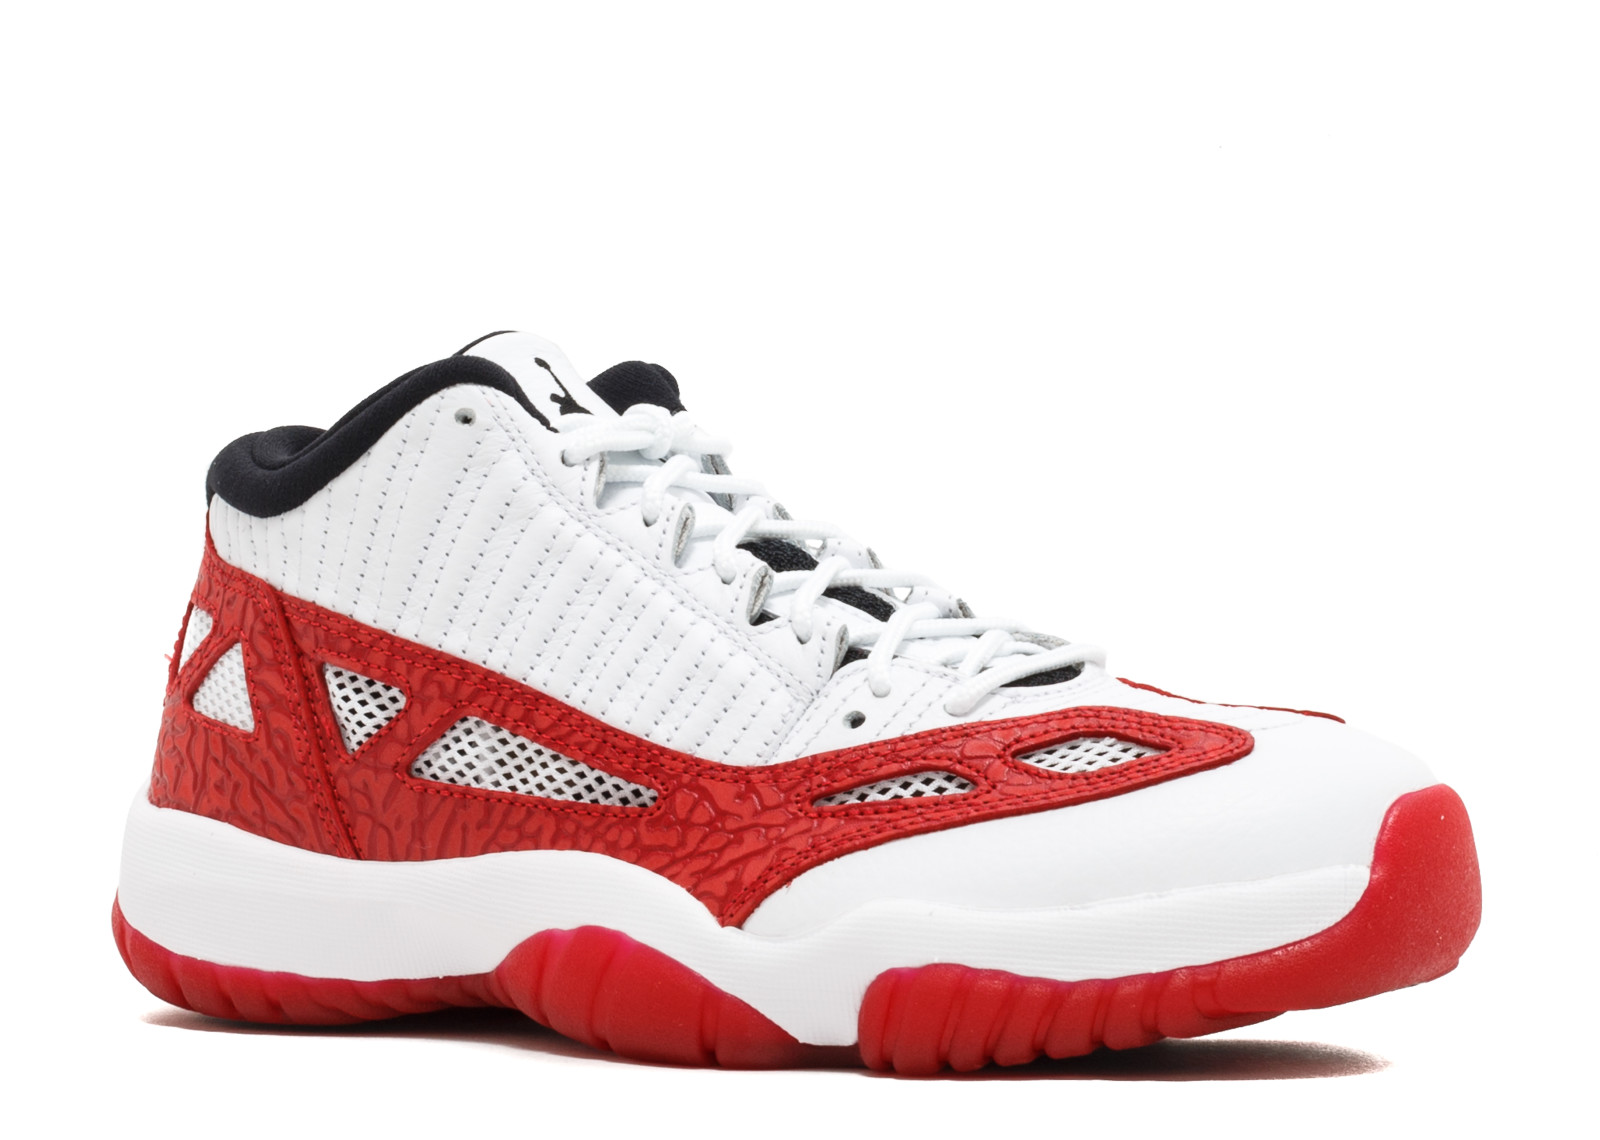 bcd9d58f12af Air Jordan - Men - Air Jordan 11 Retro Low Ie  Gym Red  - 919712-101 - Size  7.5